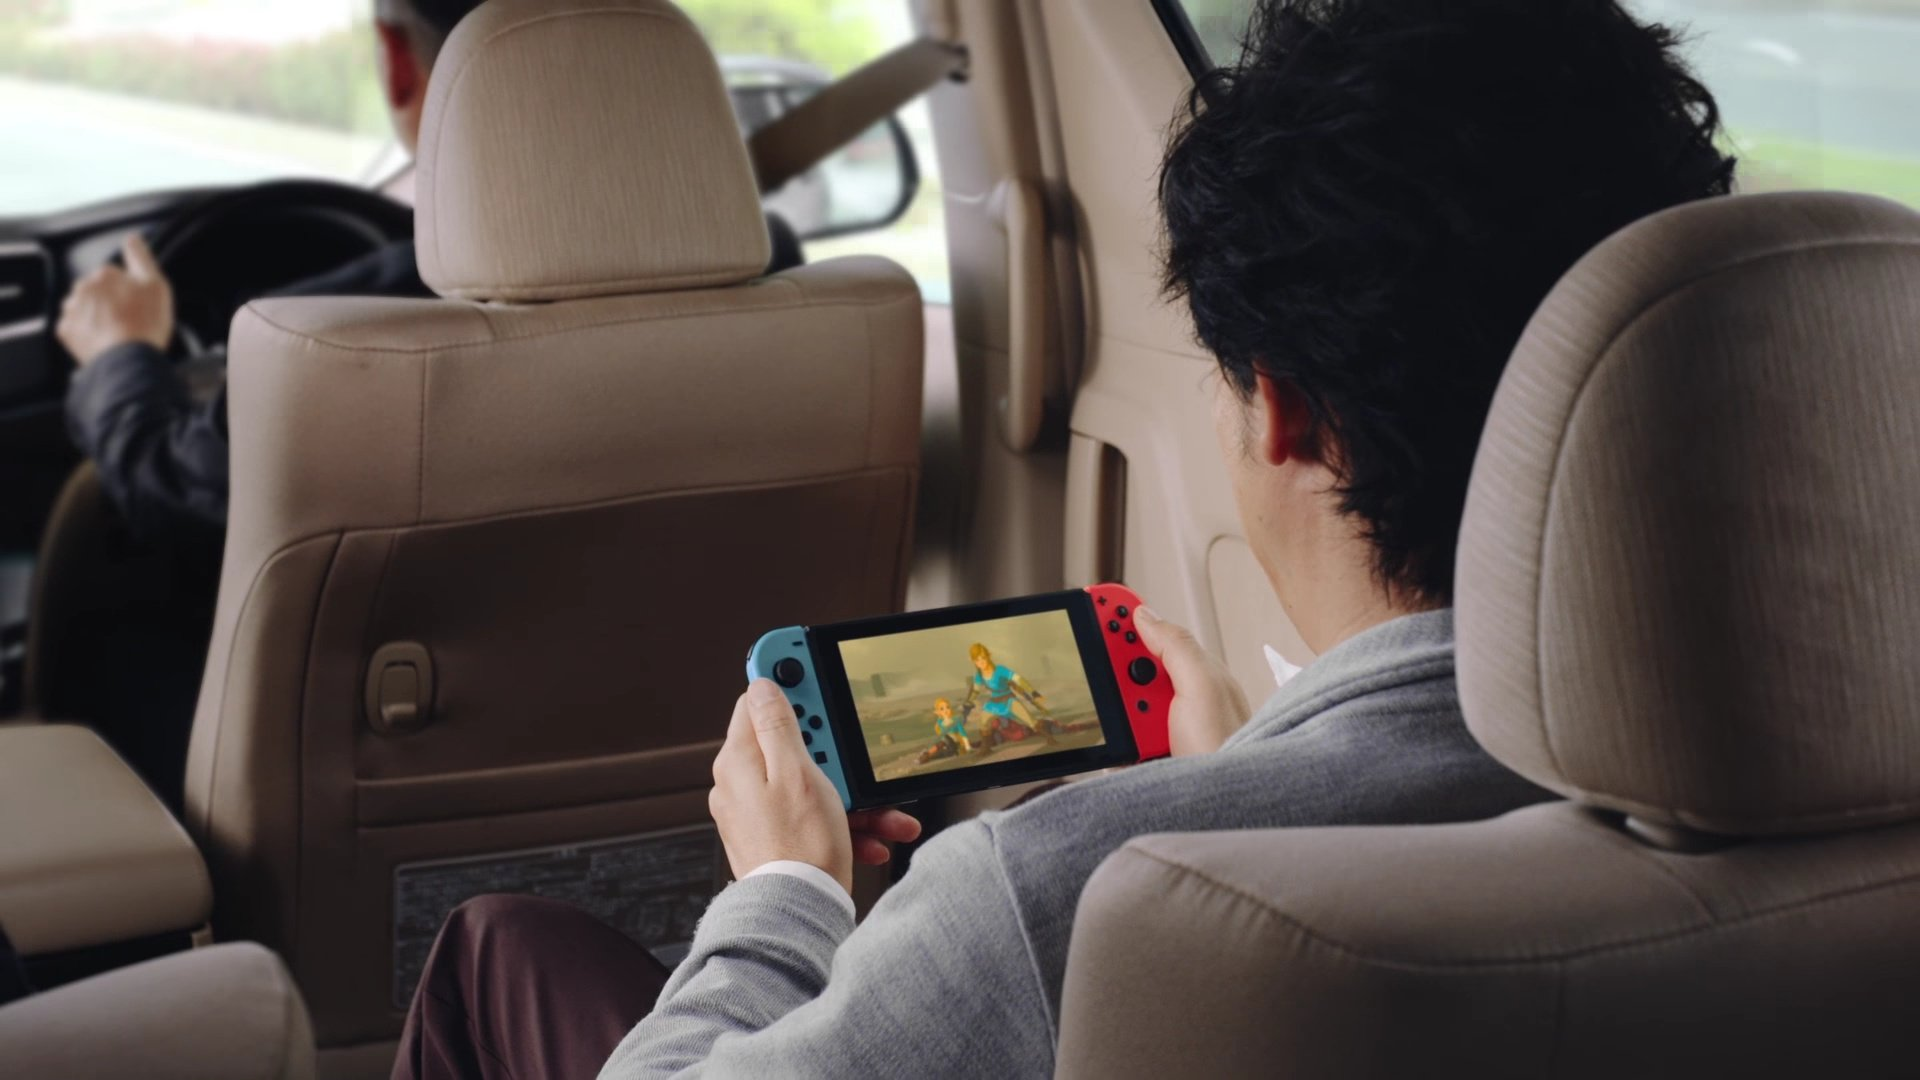 You'll Only Have Access To 25 9GB Of The Nintendo Switch's